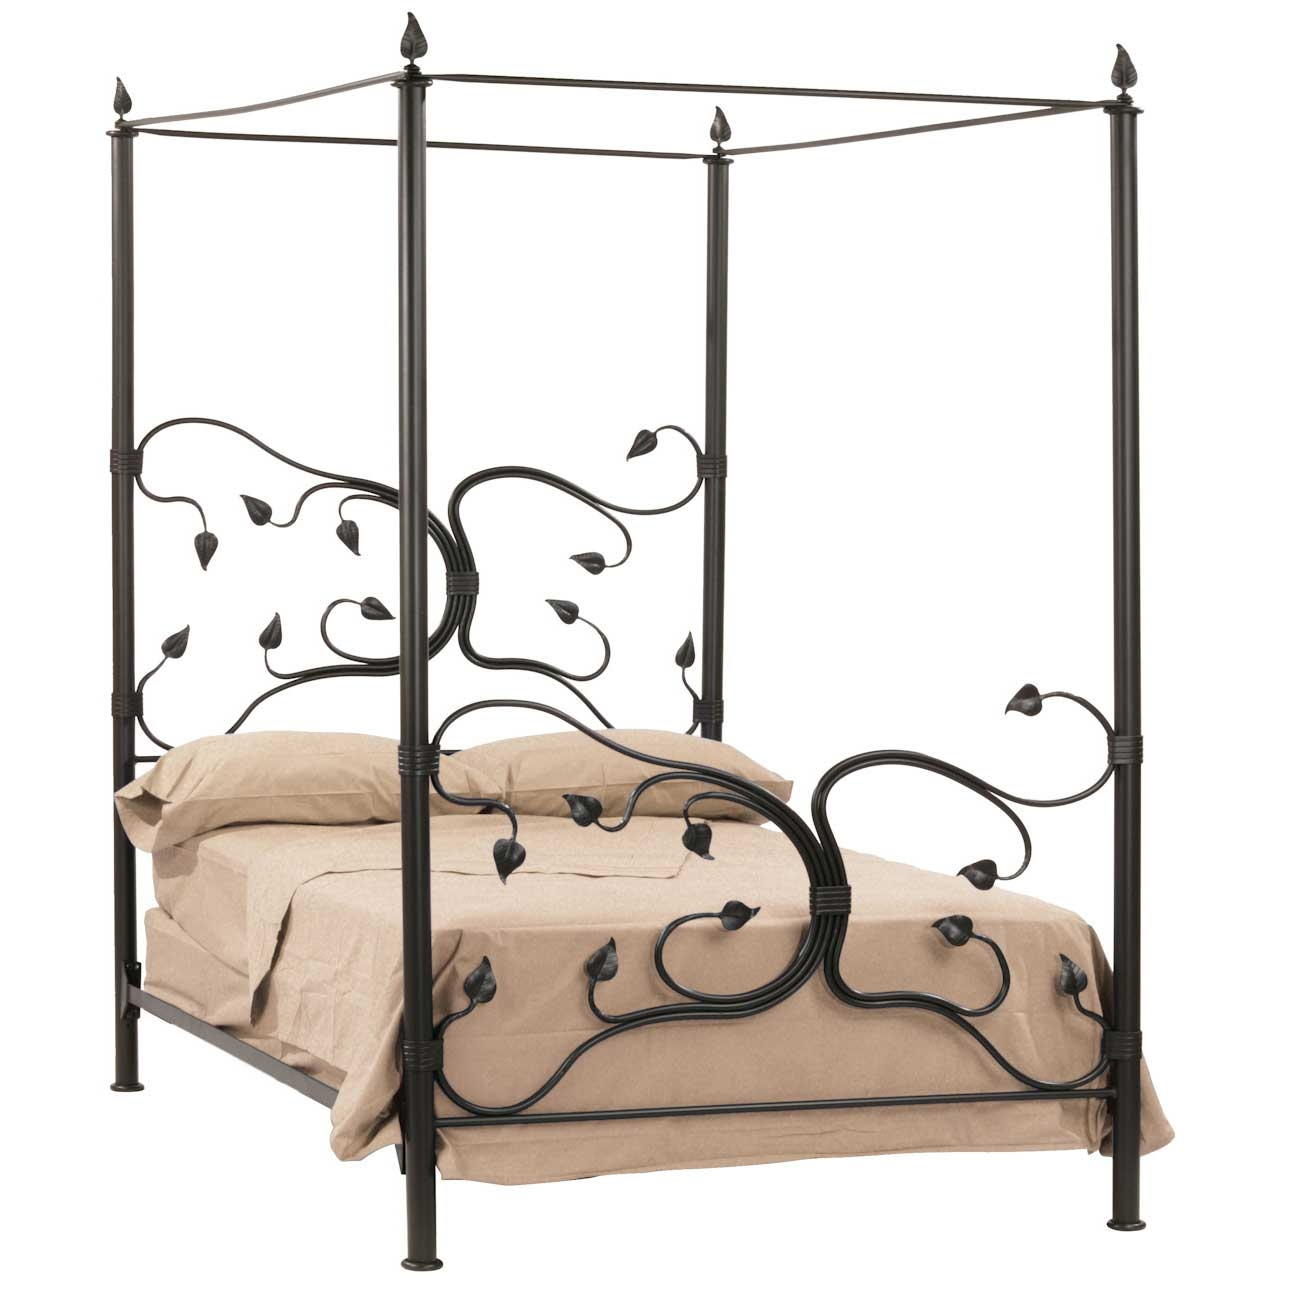 Amusing Design Of The Canopy Bed With Grey Bed Ideas Added With Black Bones With Lovely Design For Bedroom Areas